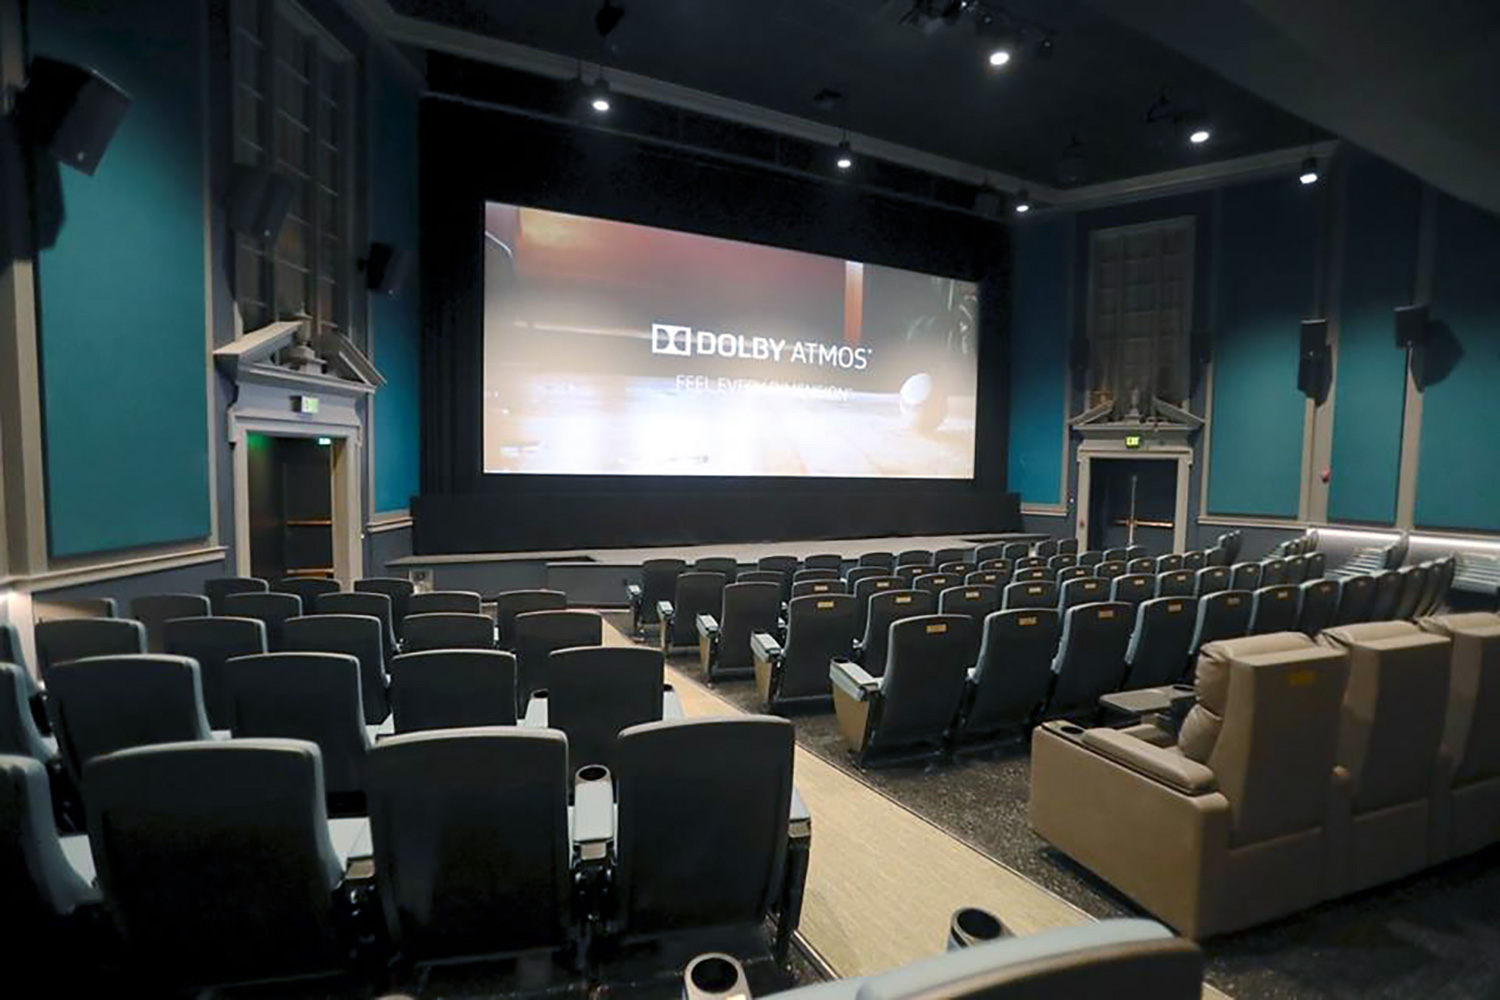 The Bedford Playhouse/Clive Davis Arts Center is a classic movie theater in the final stages of a total renovation. WSDG is providing complete acoustic and A/V design and consultation for the complex.Main Dolby Atmos Theater Screen View